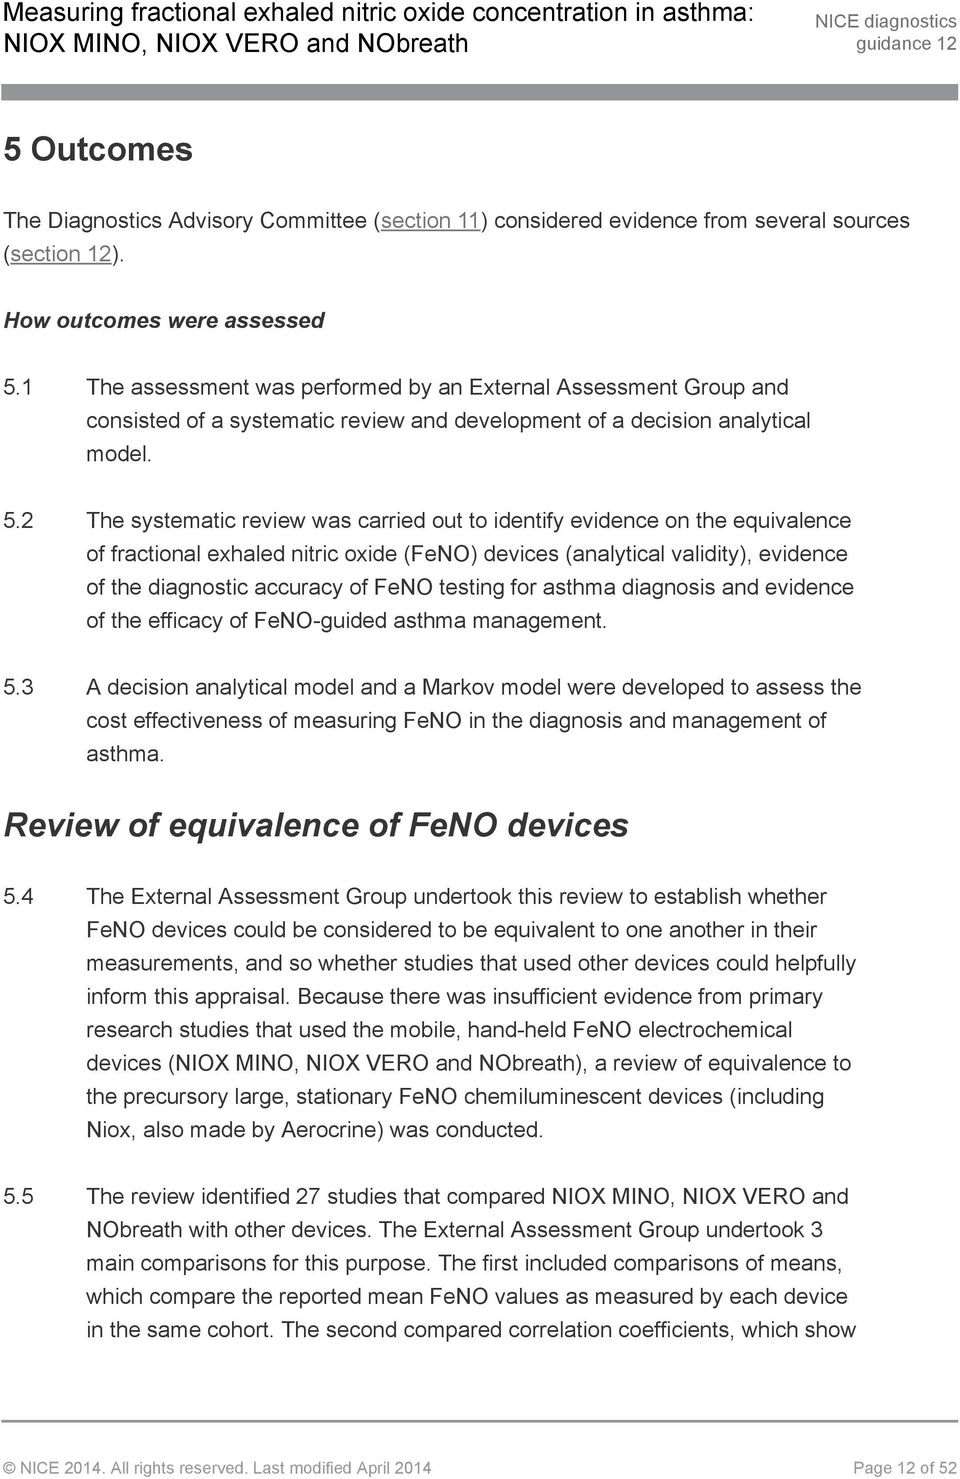 2 The systematic review was carried out to identify evidence on the equivalence of fractional exhaled nitric oxide (FeNO) devices (analytical validity), evidence of the diagnostic accuracy of FeNO